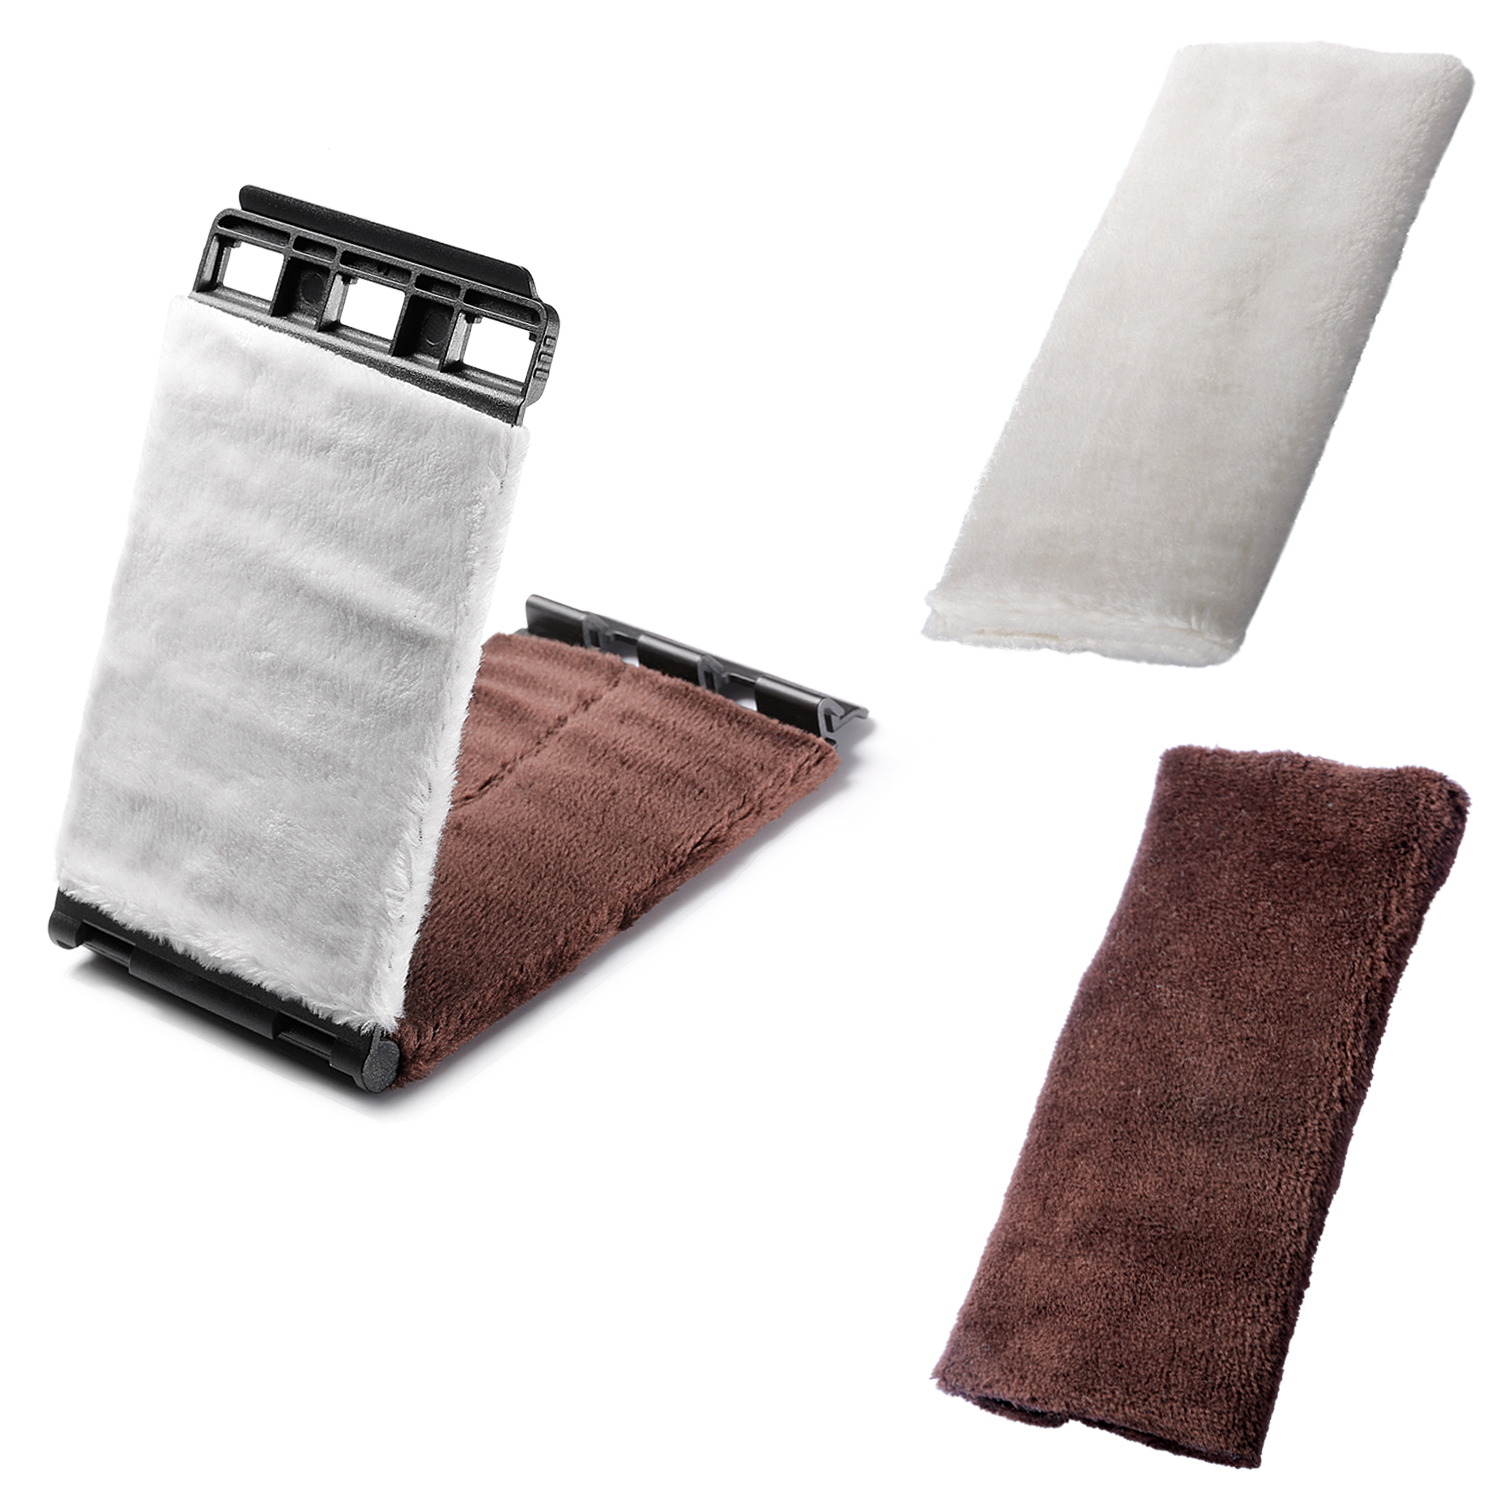 Microfiber Cloth Manufacturers Uk: Neewer Easy To Use Microfiber Cleaning Cloth String